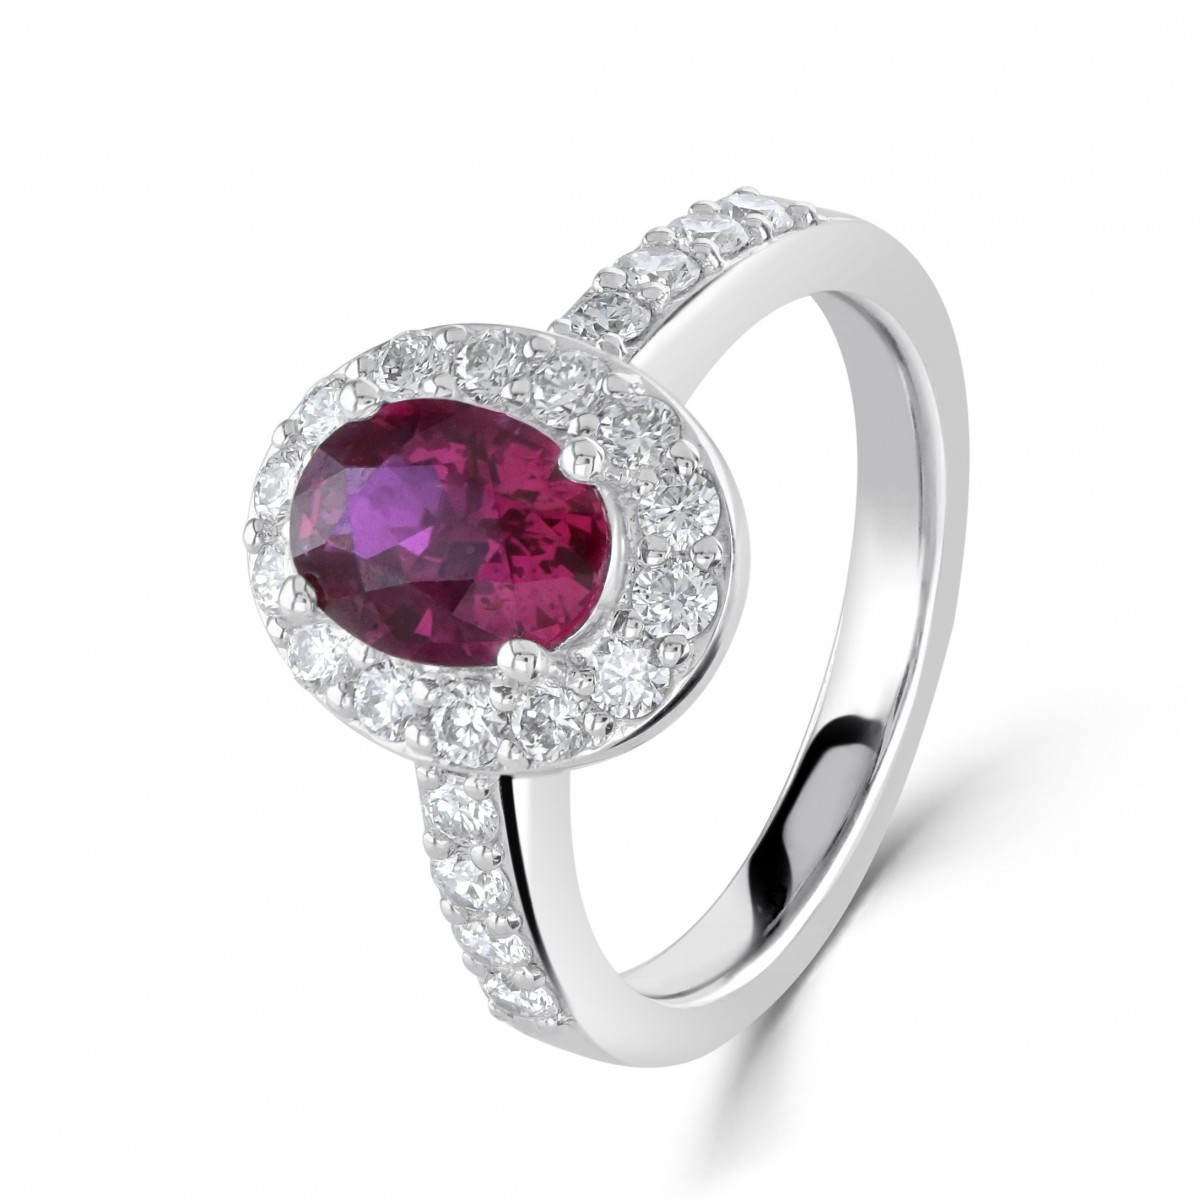 18ct White Gold Rare Pigeon Blood Ruby & Diamond Cluster Ring